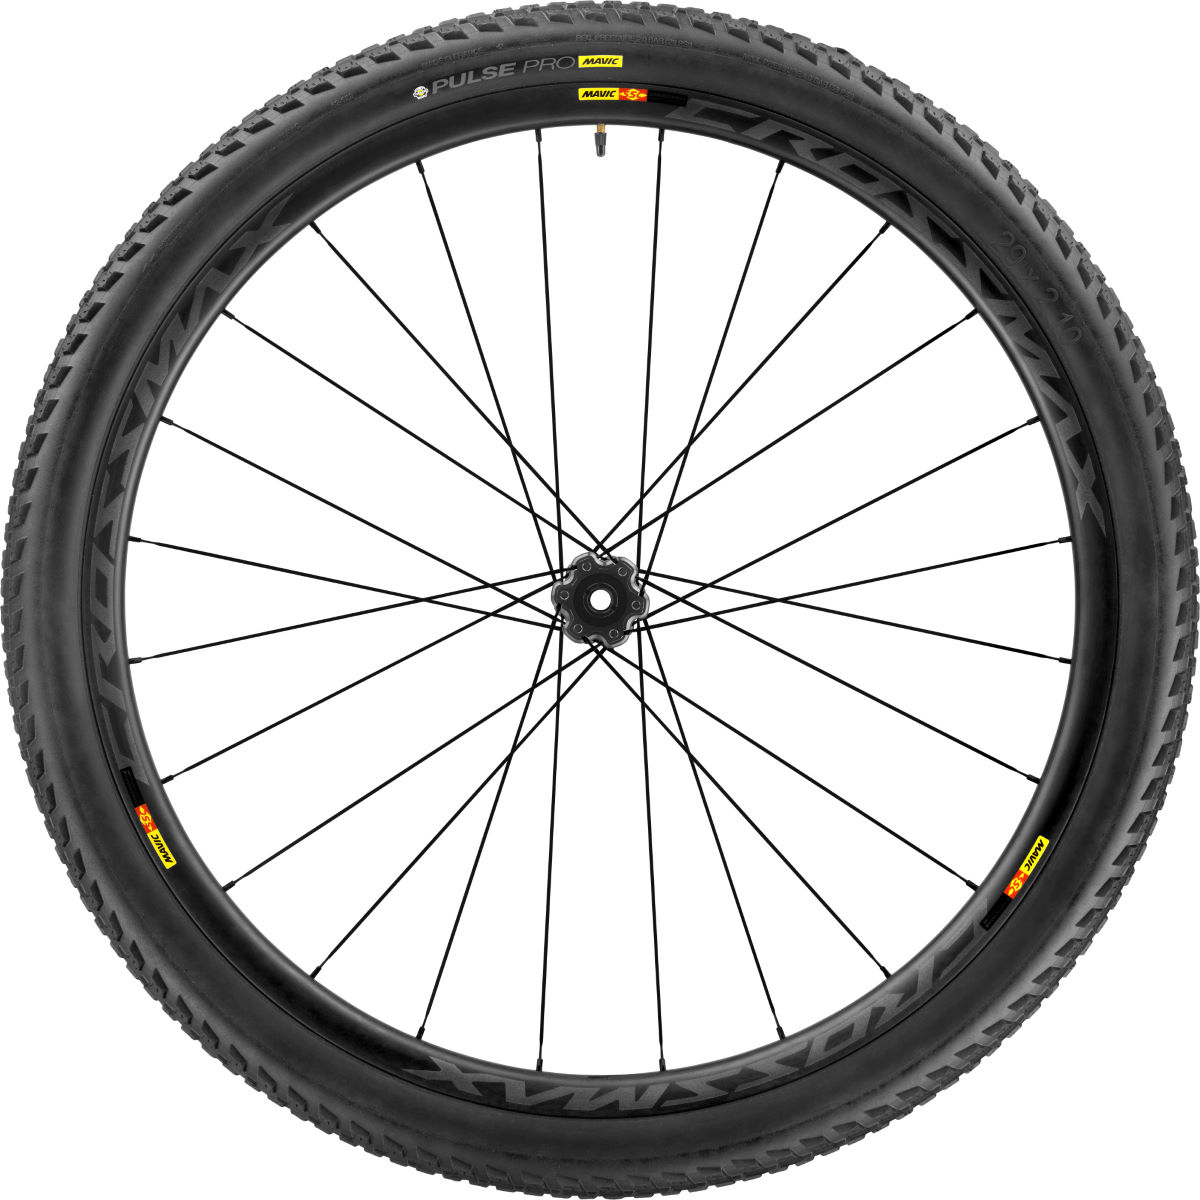 "Front wheel Mavic Crossmax Pro Carbon 29 ""(with cover) - Competition wheels"